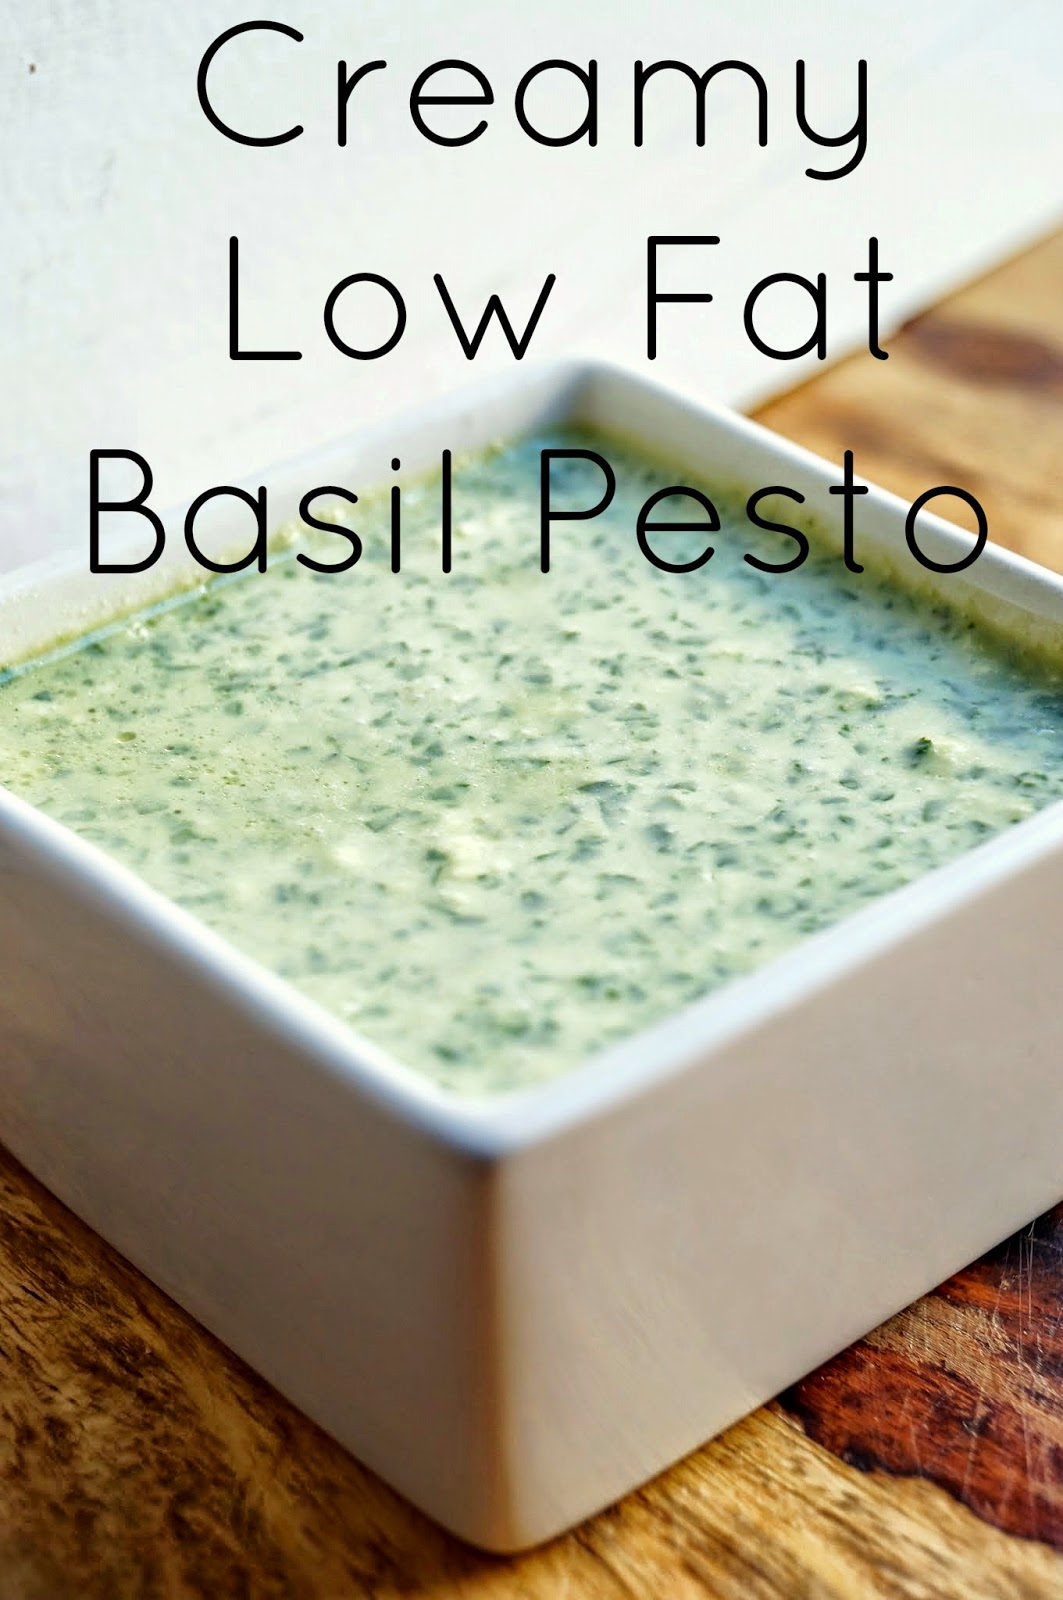 Creamy Low Fat Basil Pesto